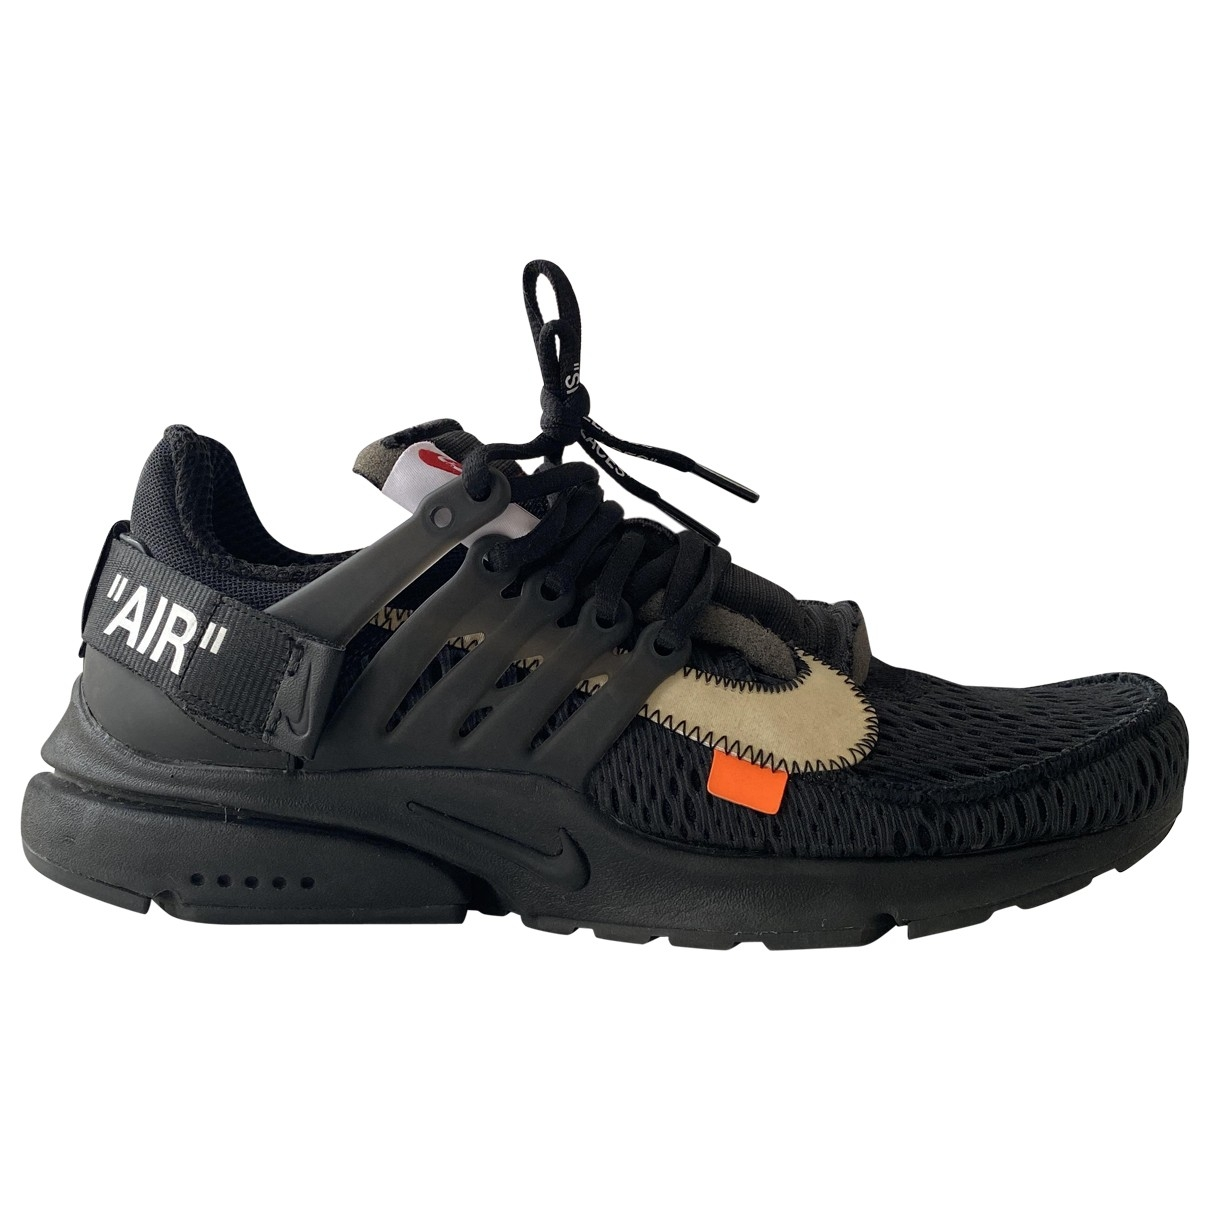 Nike X Off-white Air Presto Black Cloth Trainers for Women 7 UK